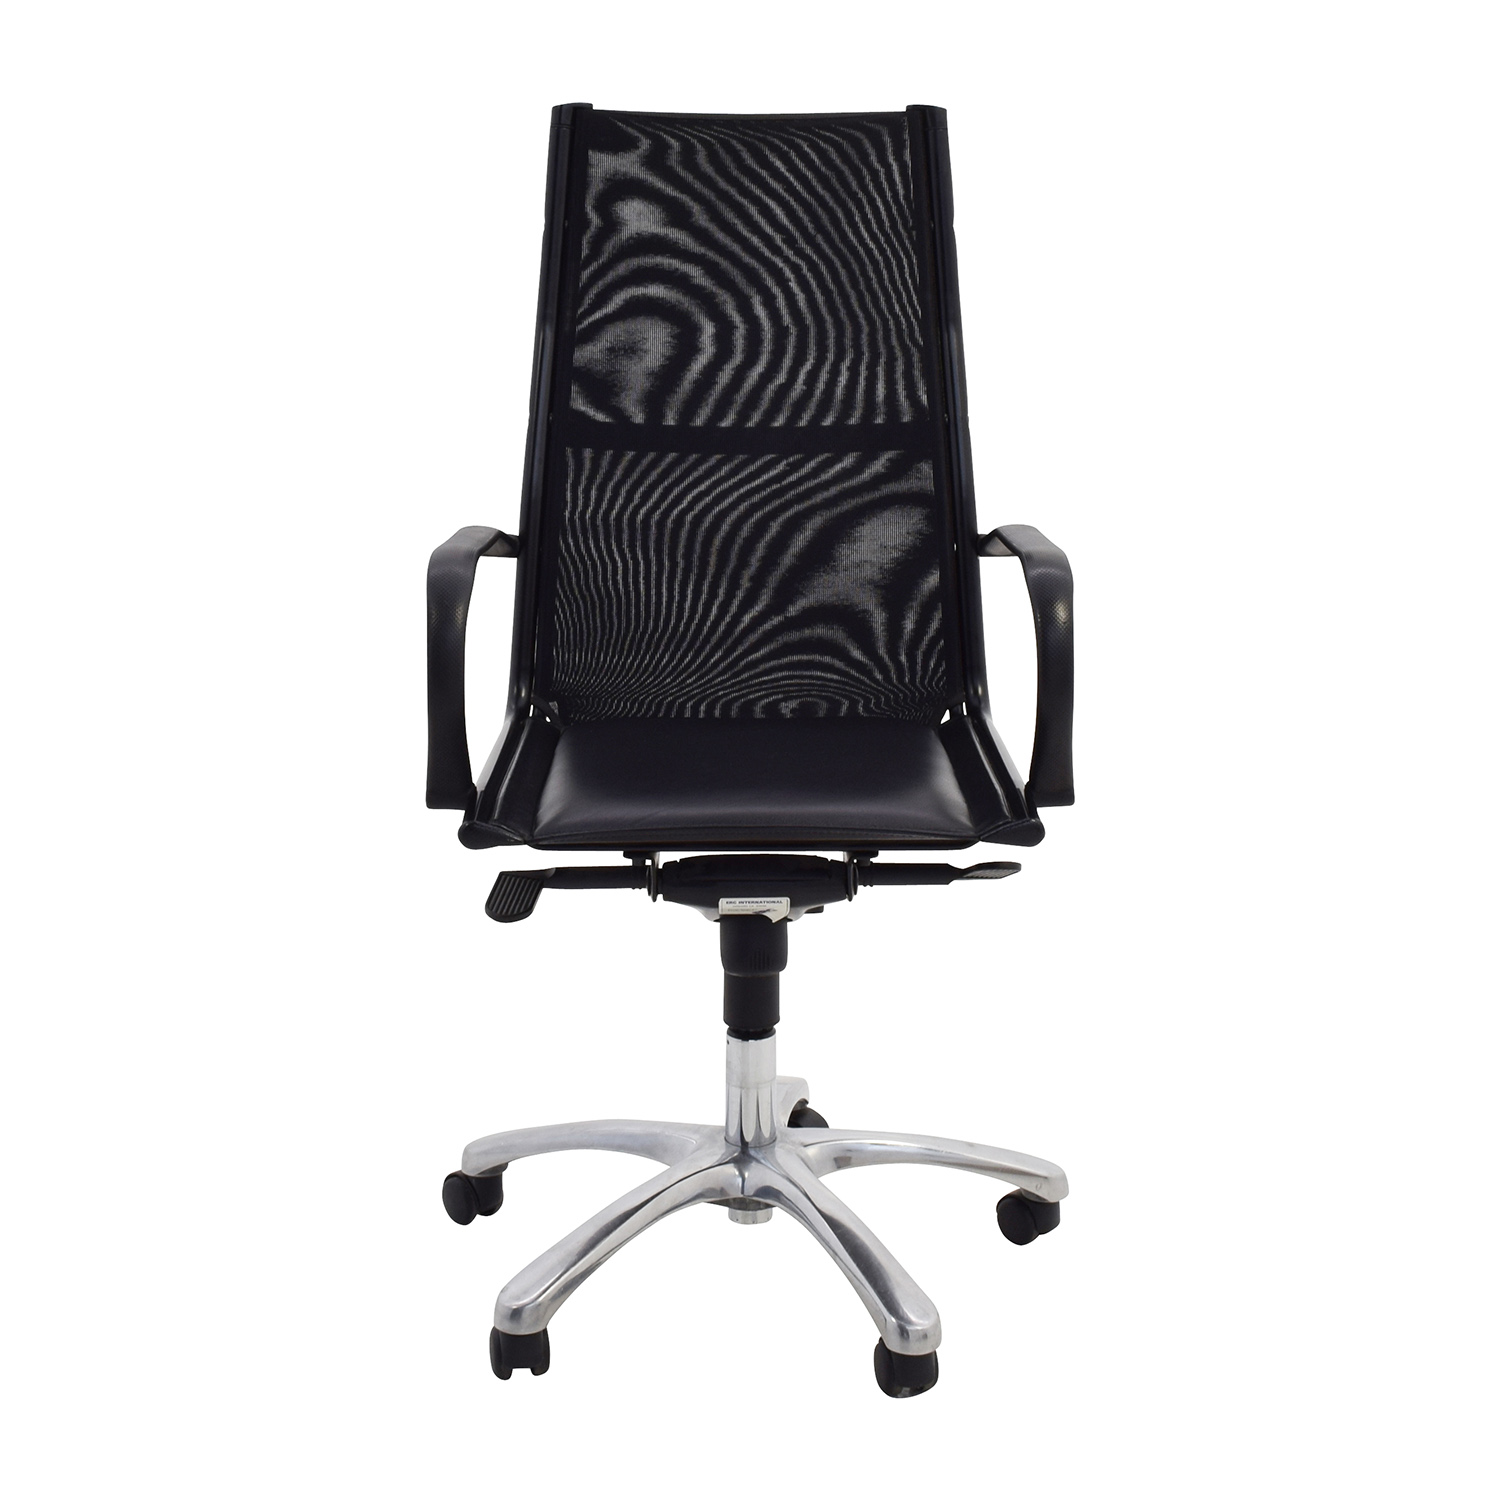 ERG International ERG International Black Office Chair nj